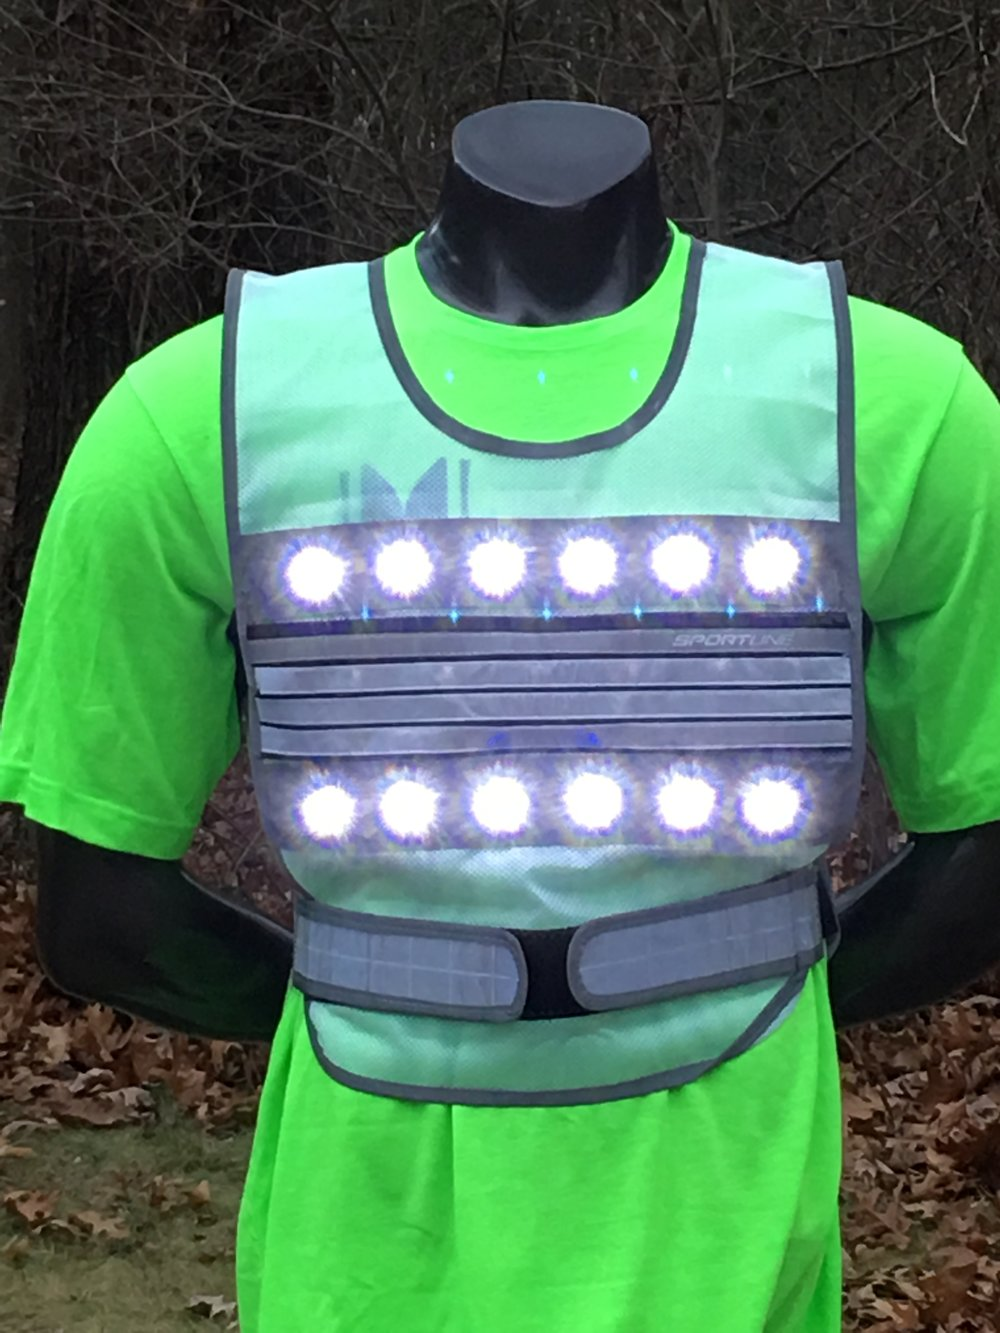 LEDLightvest-Original-frnt-safety-vest-experts----Grand Rapids-MI.JPG